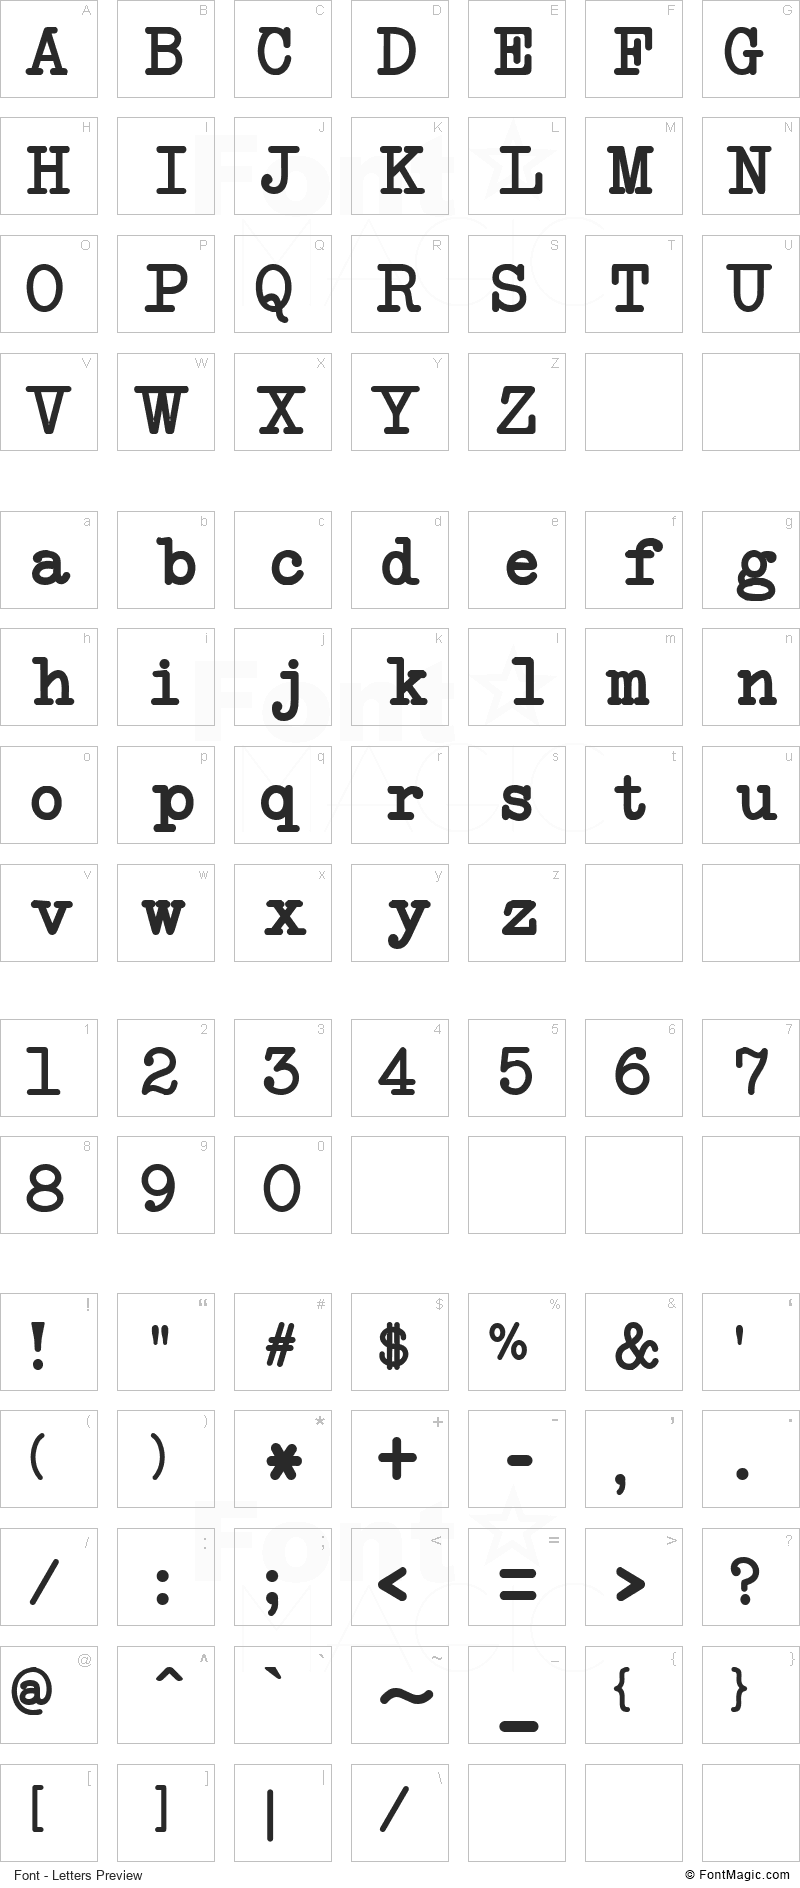 NeoBulletin Font - All Latters Preview Chart